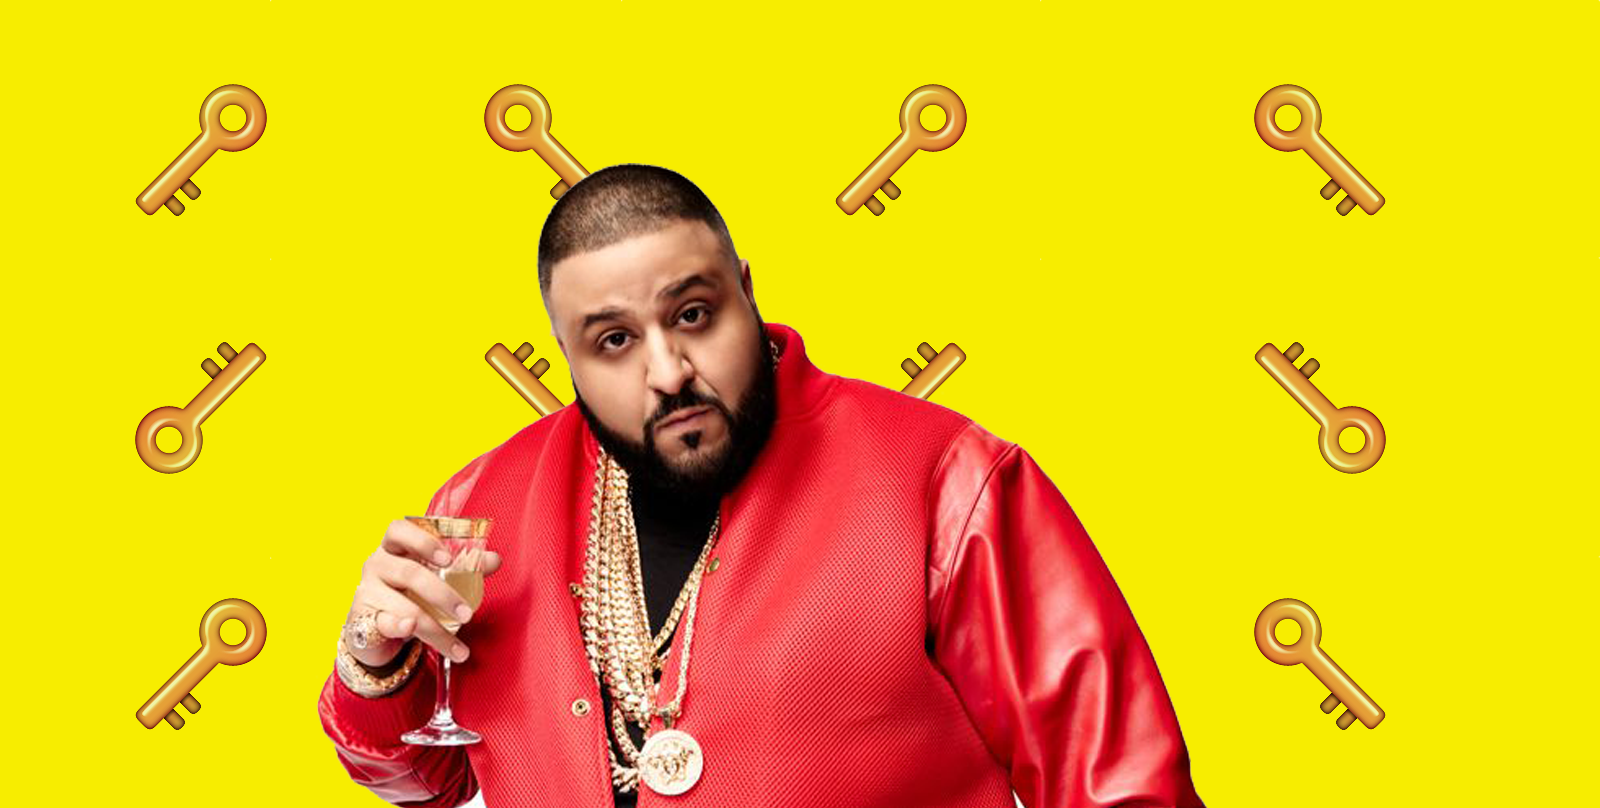 DJ Khaled's Major Keys to Brand Success